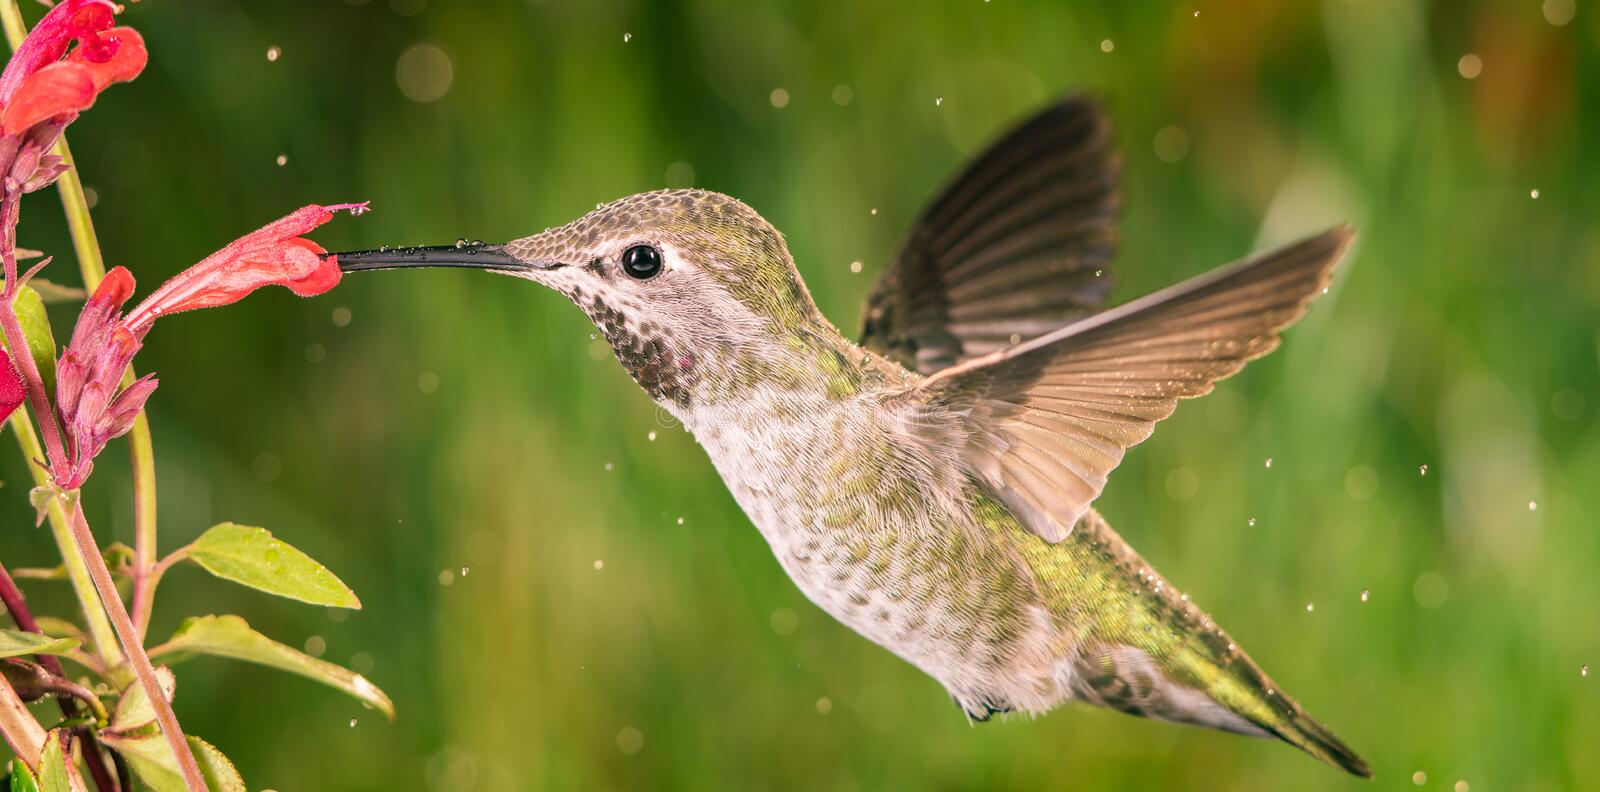 Hummingbird visits anise hyssop. This is a photograph of a hummingbird visiting anise hyssop royalty free stock photography